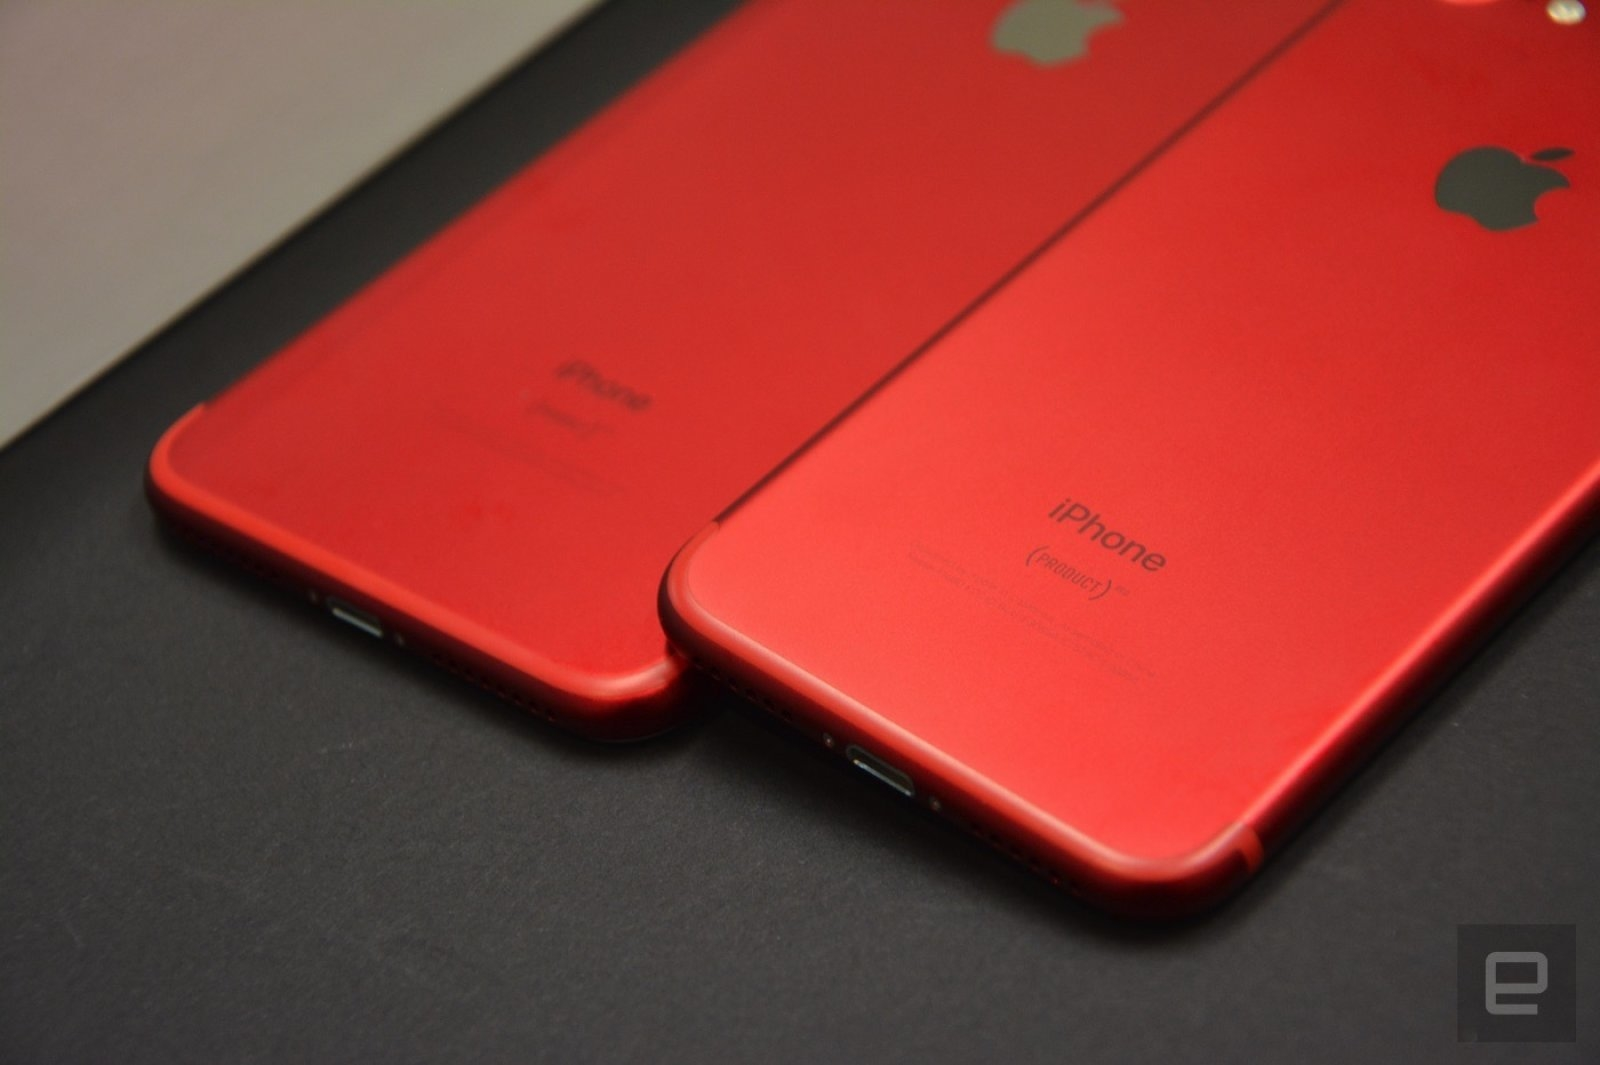 Apple may unveil red iPhone 8 and 8 Plus models this week